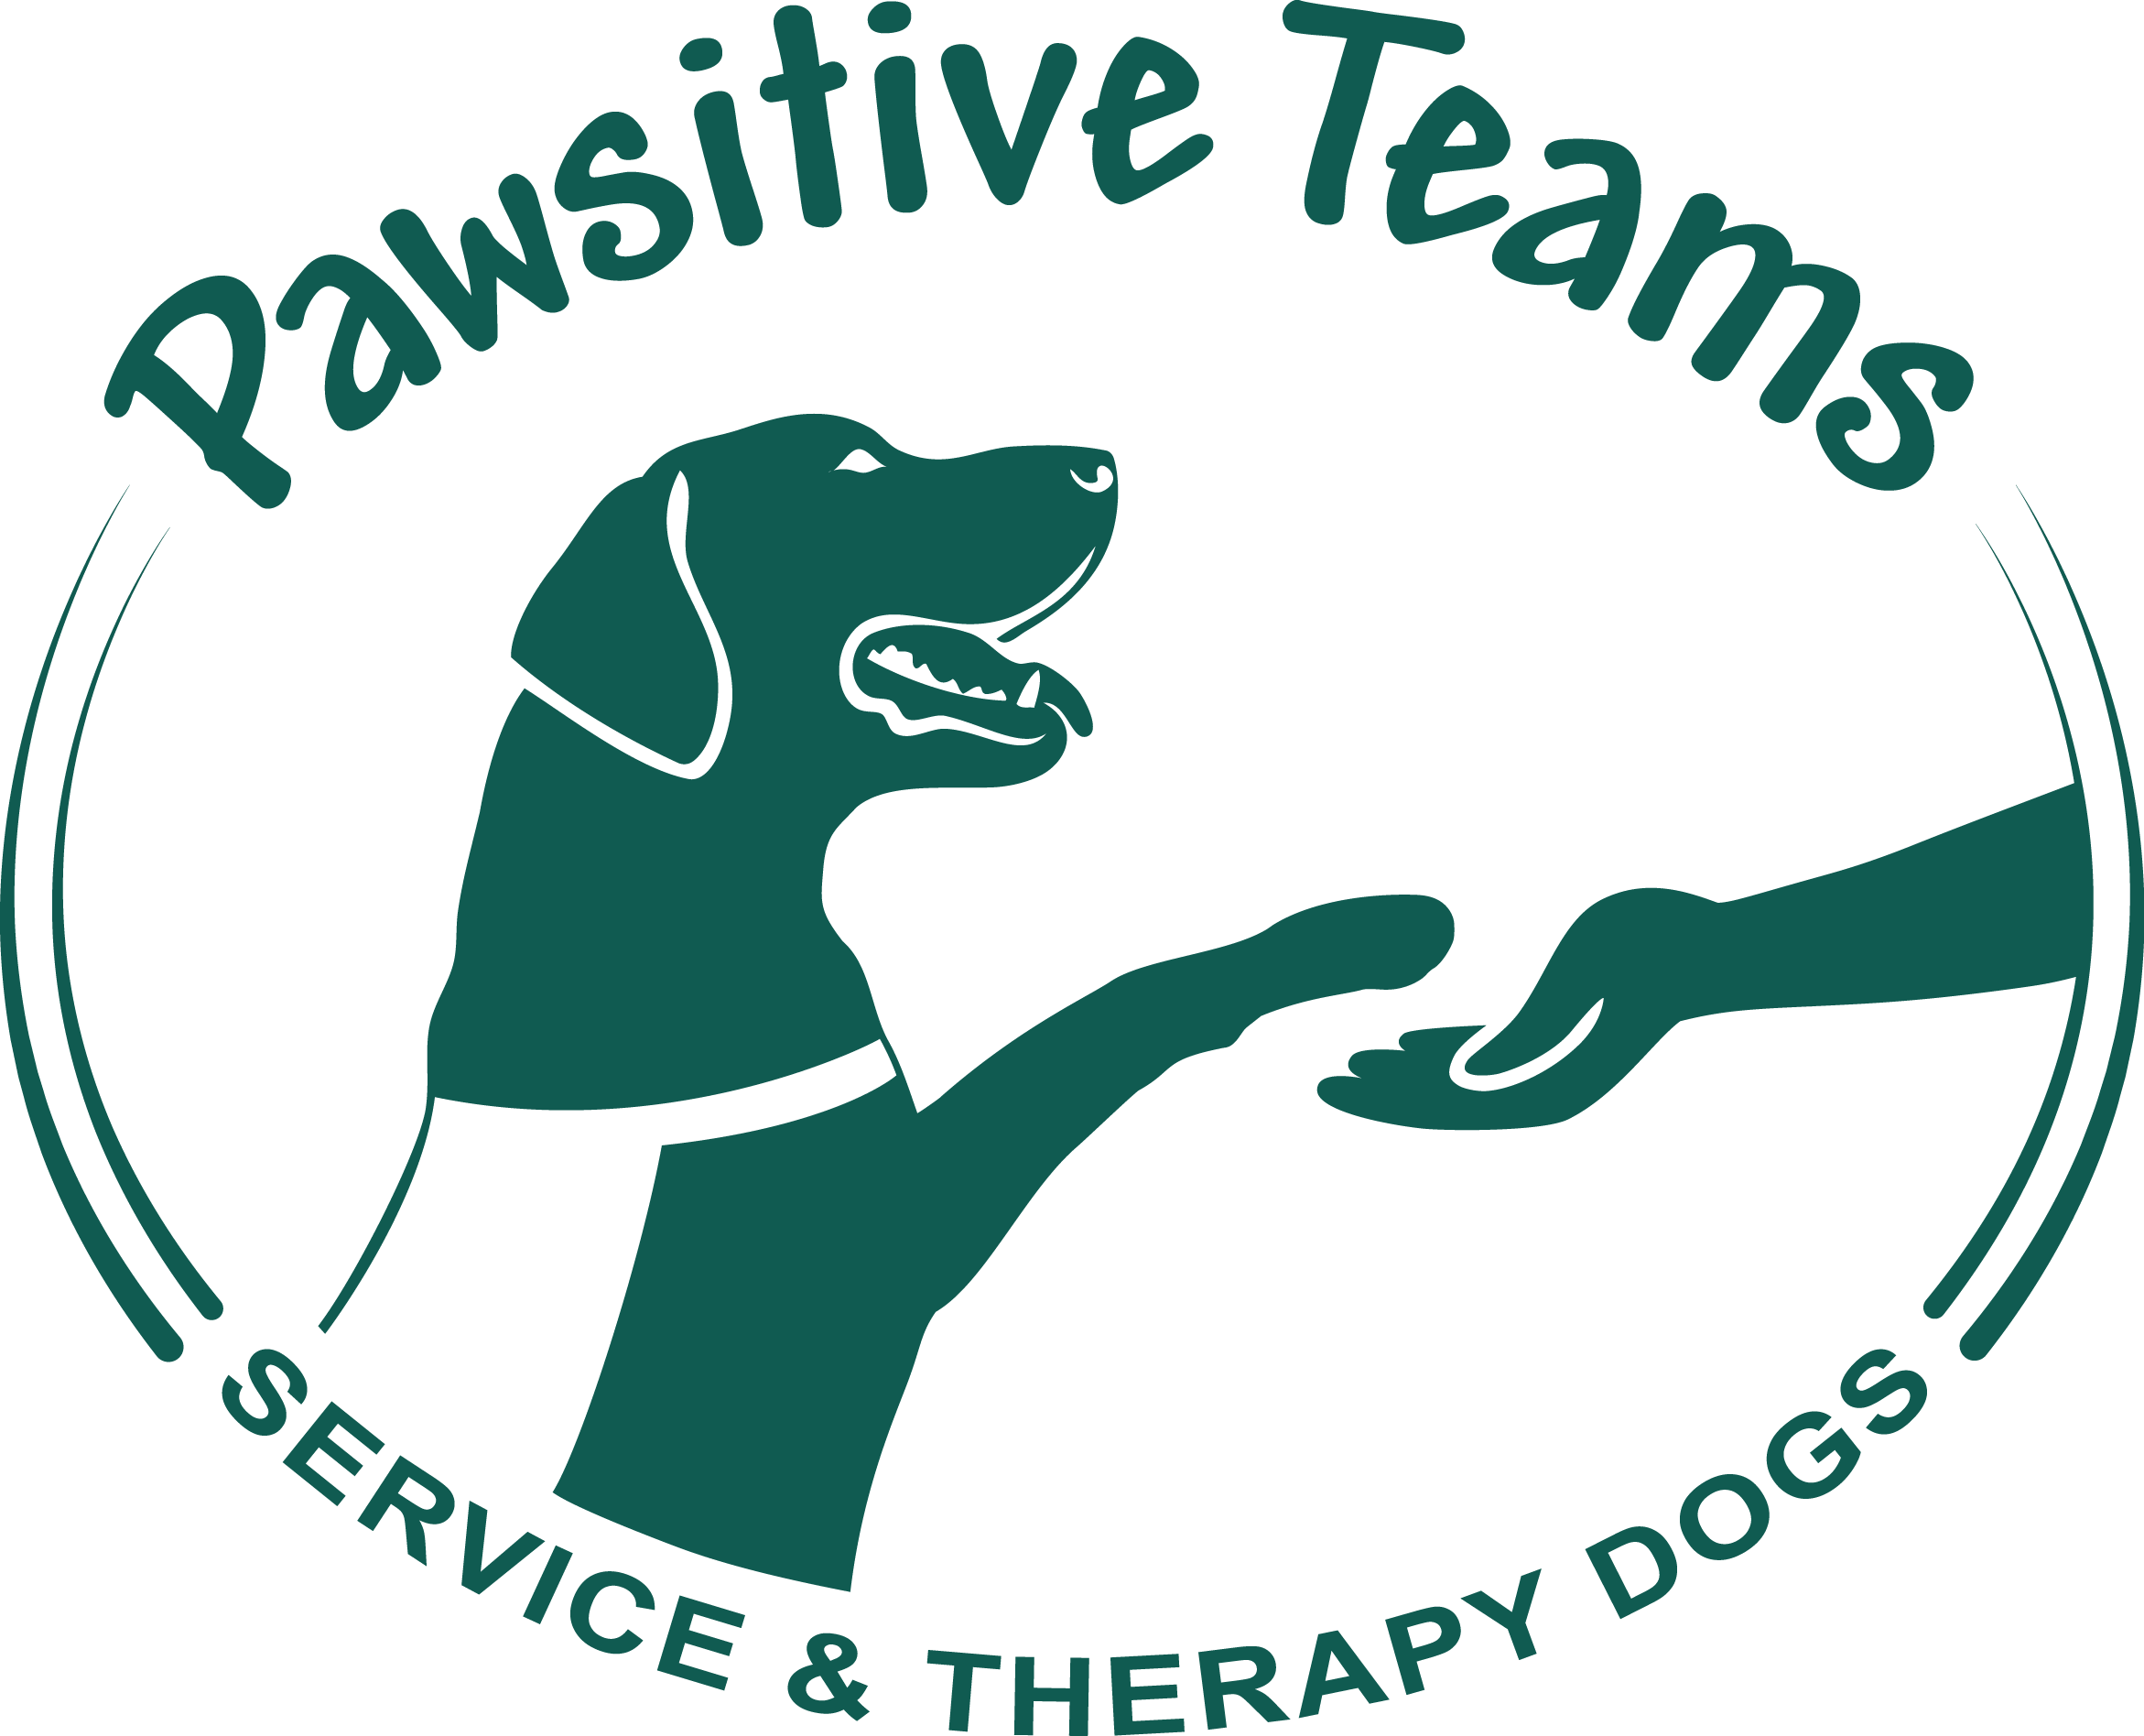 Pawsitive Teams